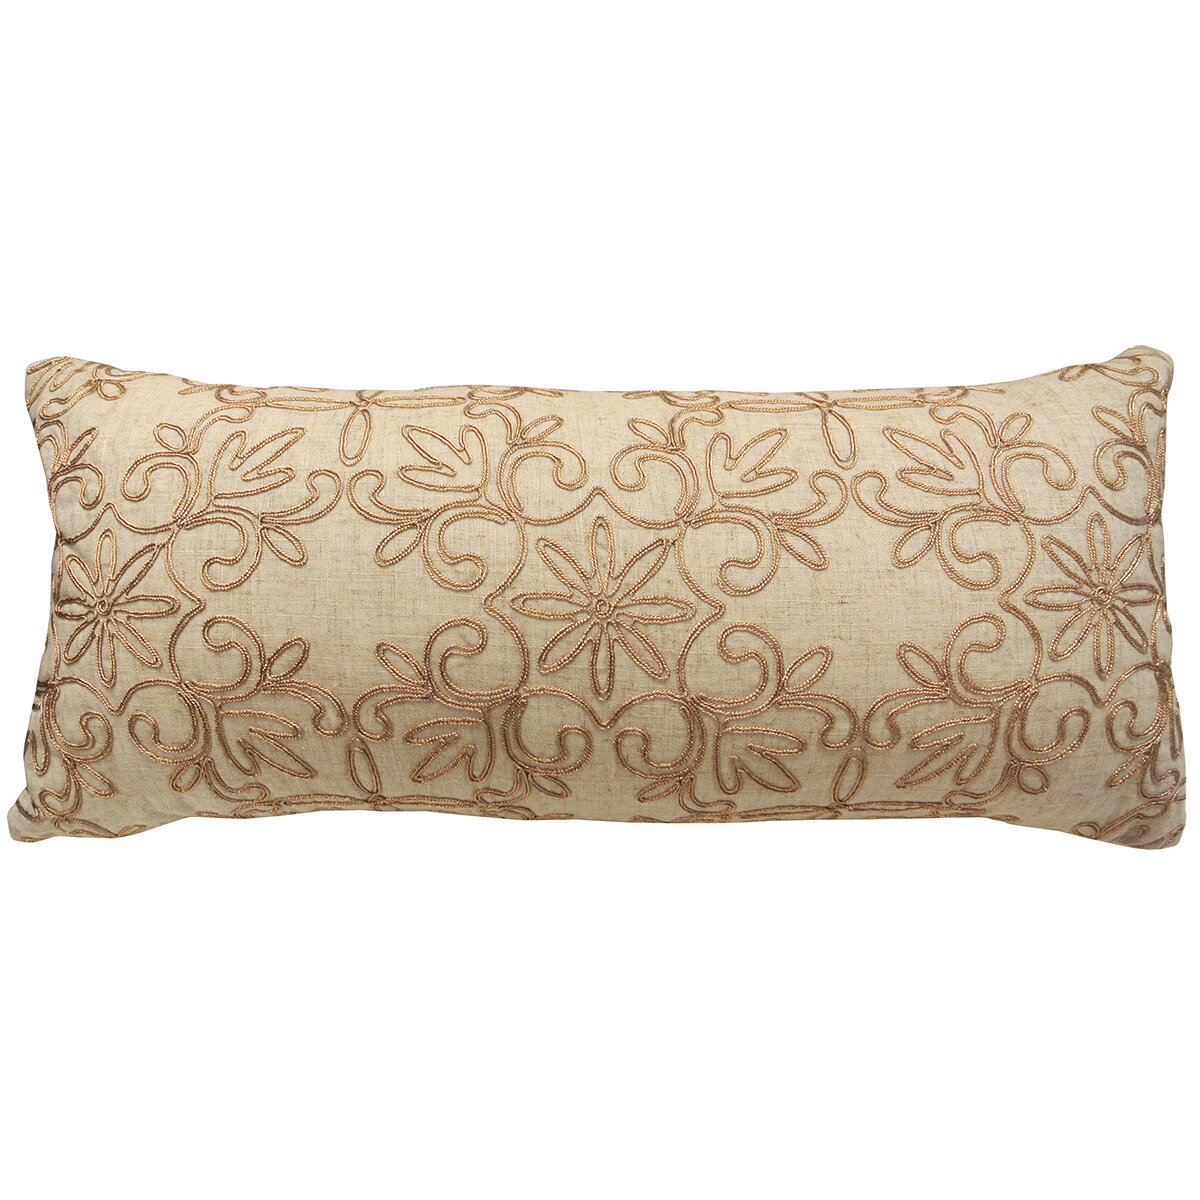 Throw Pillow Bolster : Artistic Linen Bolster Decorative 12